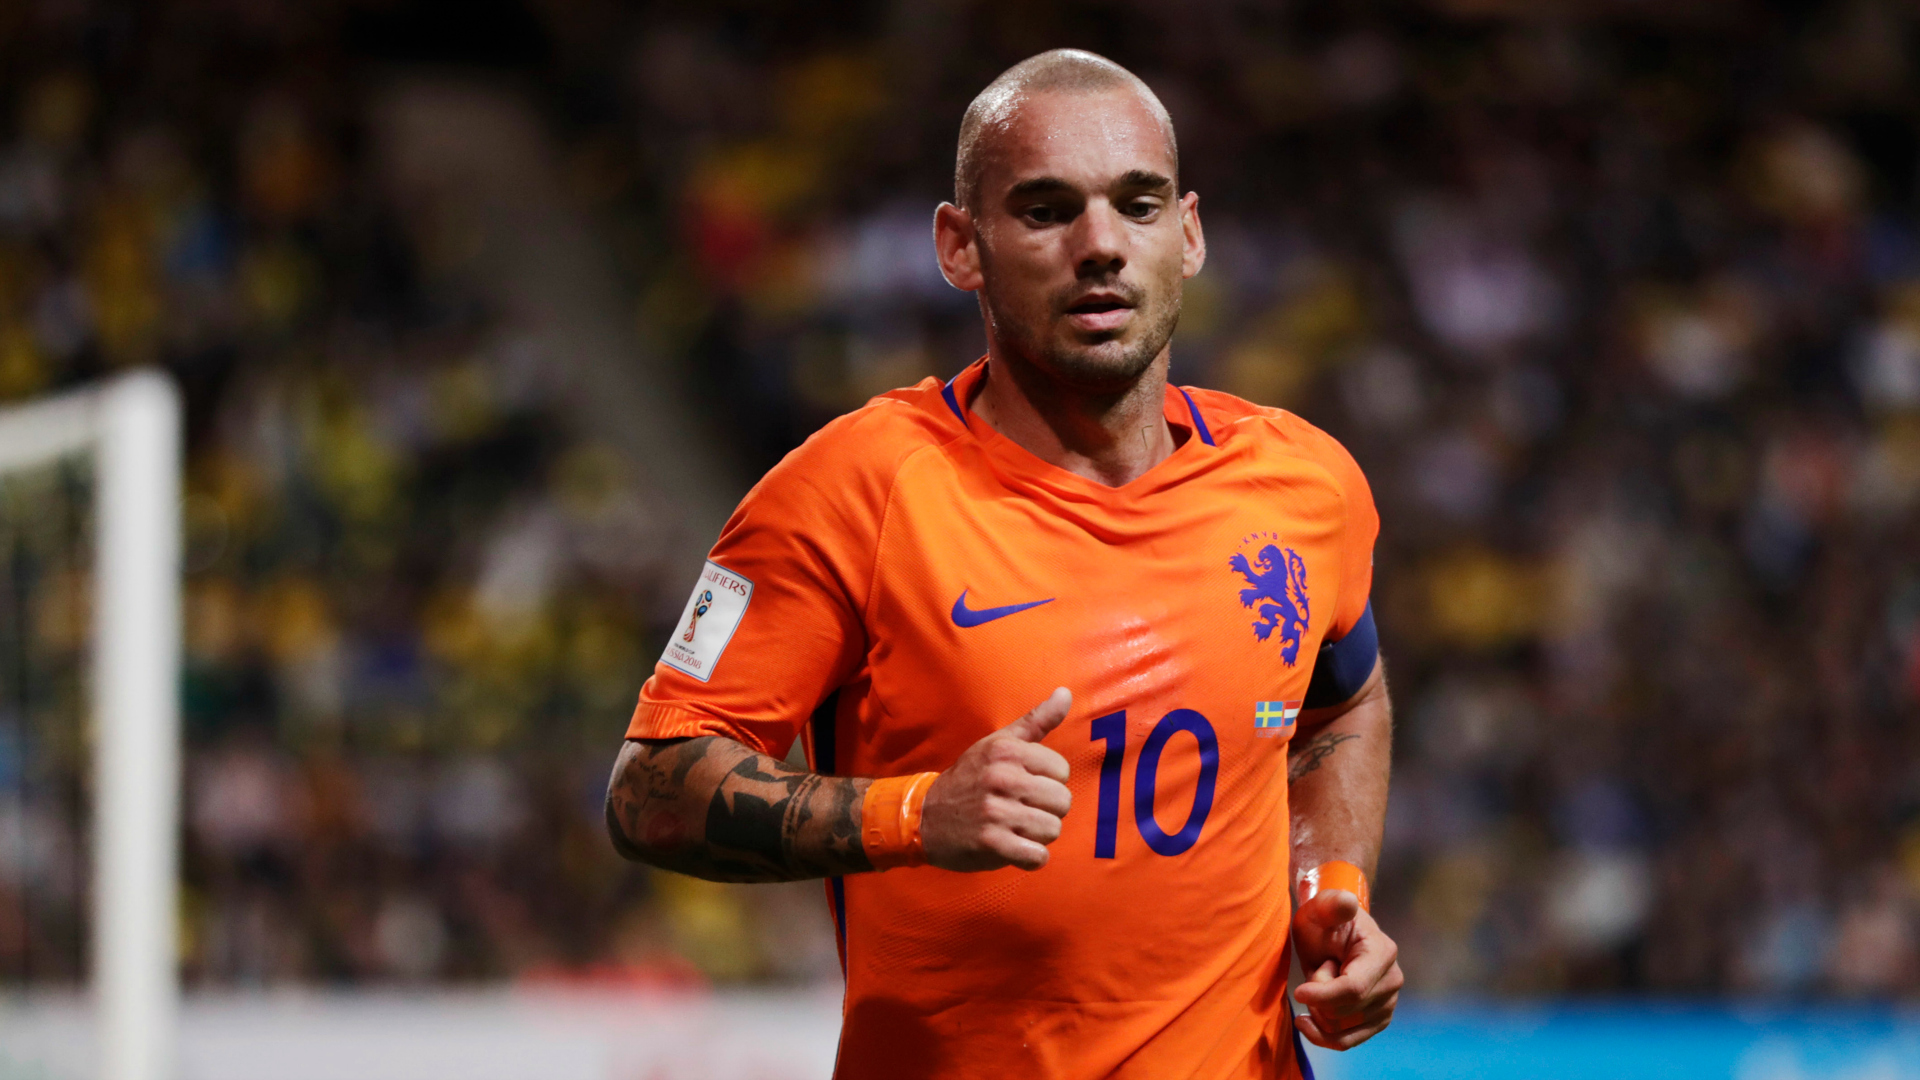 Sneijder becomes the Netherlands' most-capped international